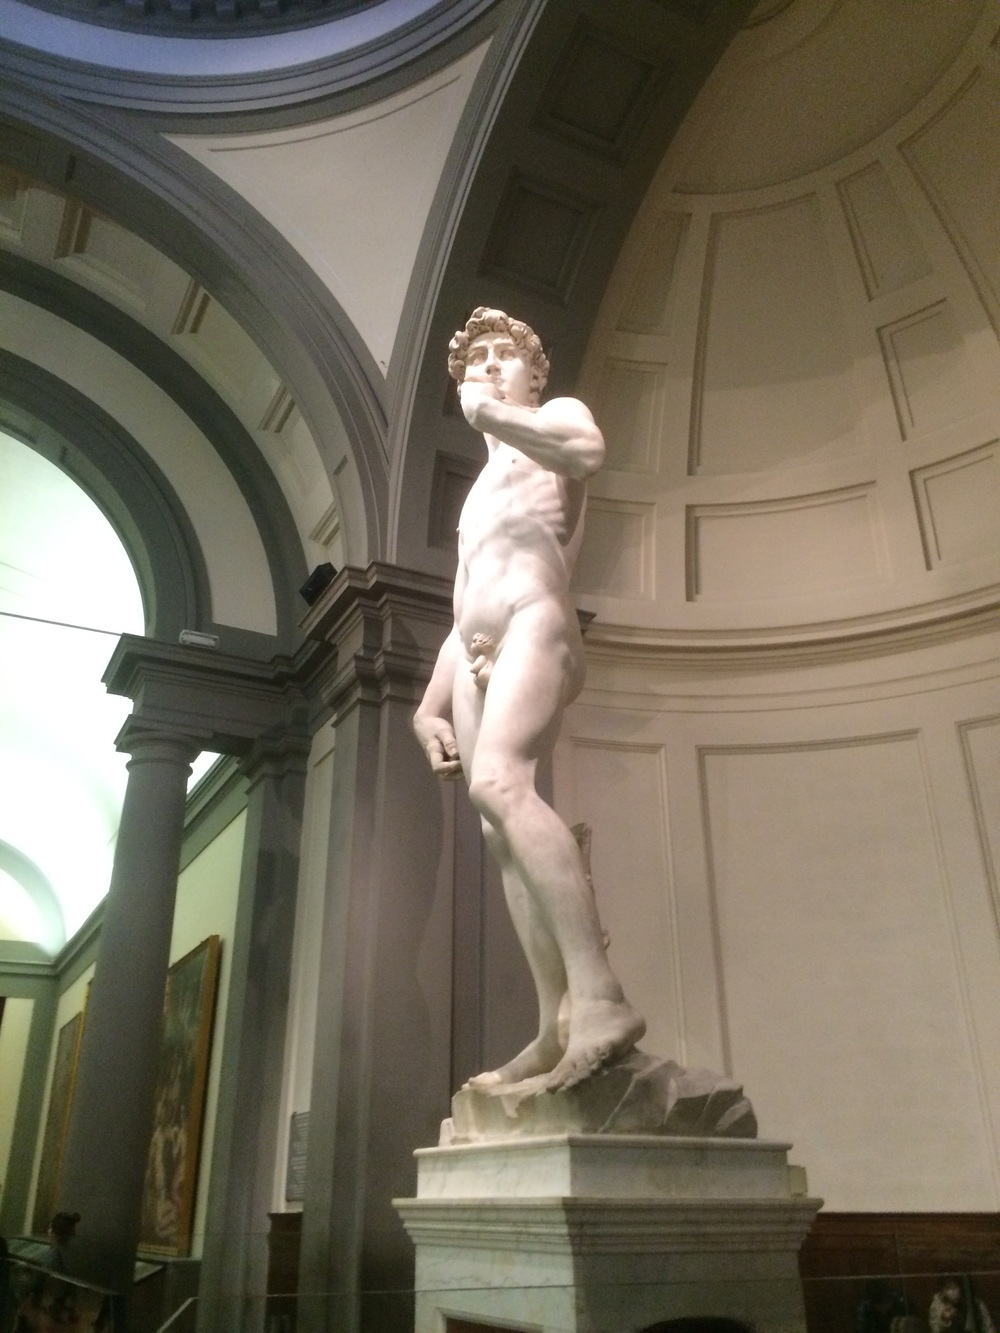 David of David and Goliath fame, though I don't think he was nude when he fought Goliath